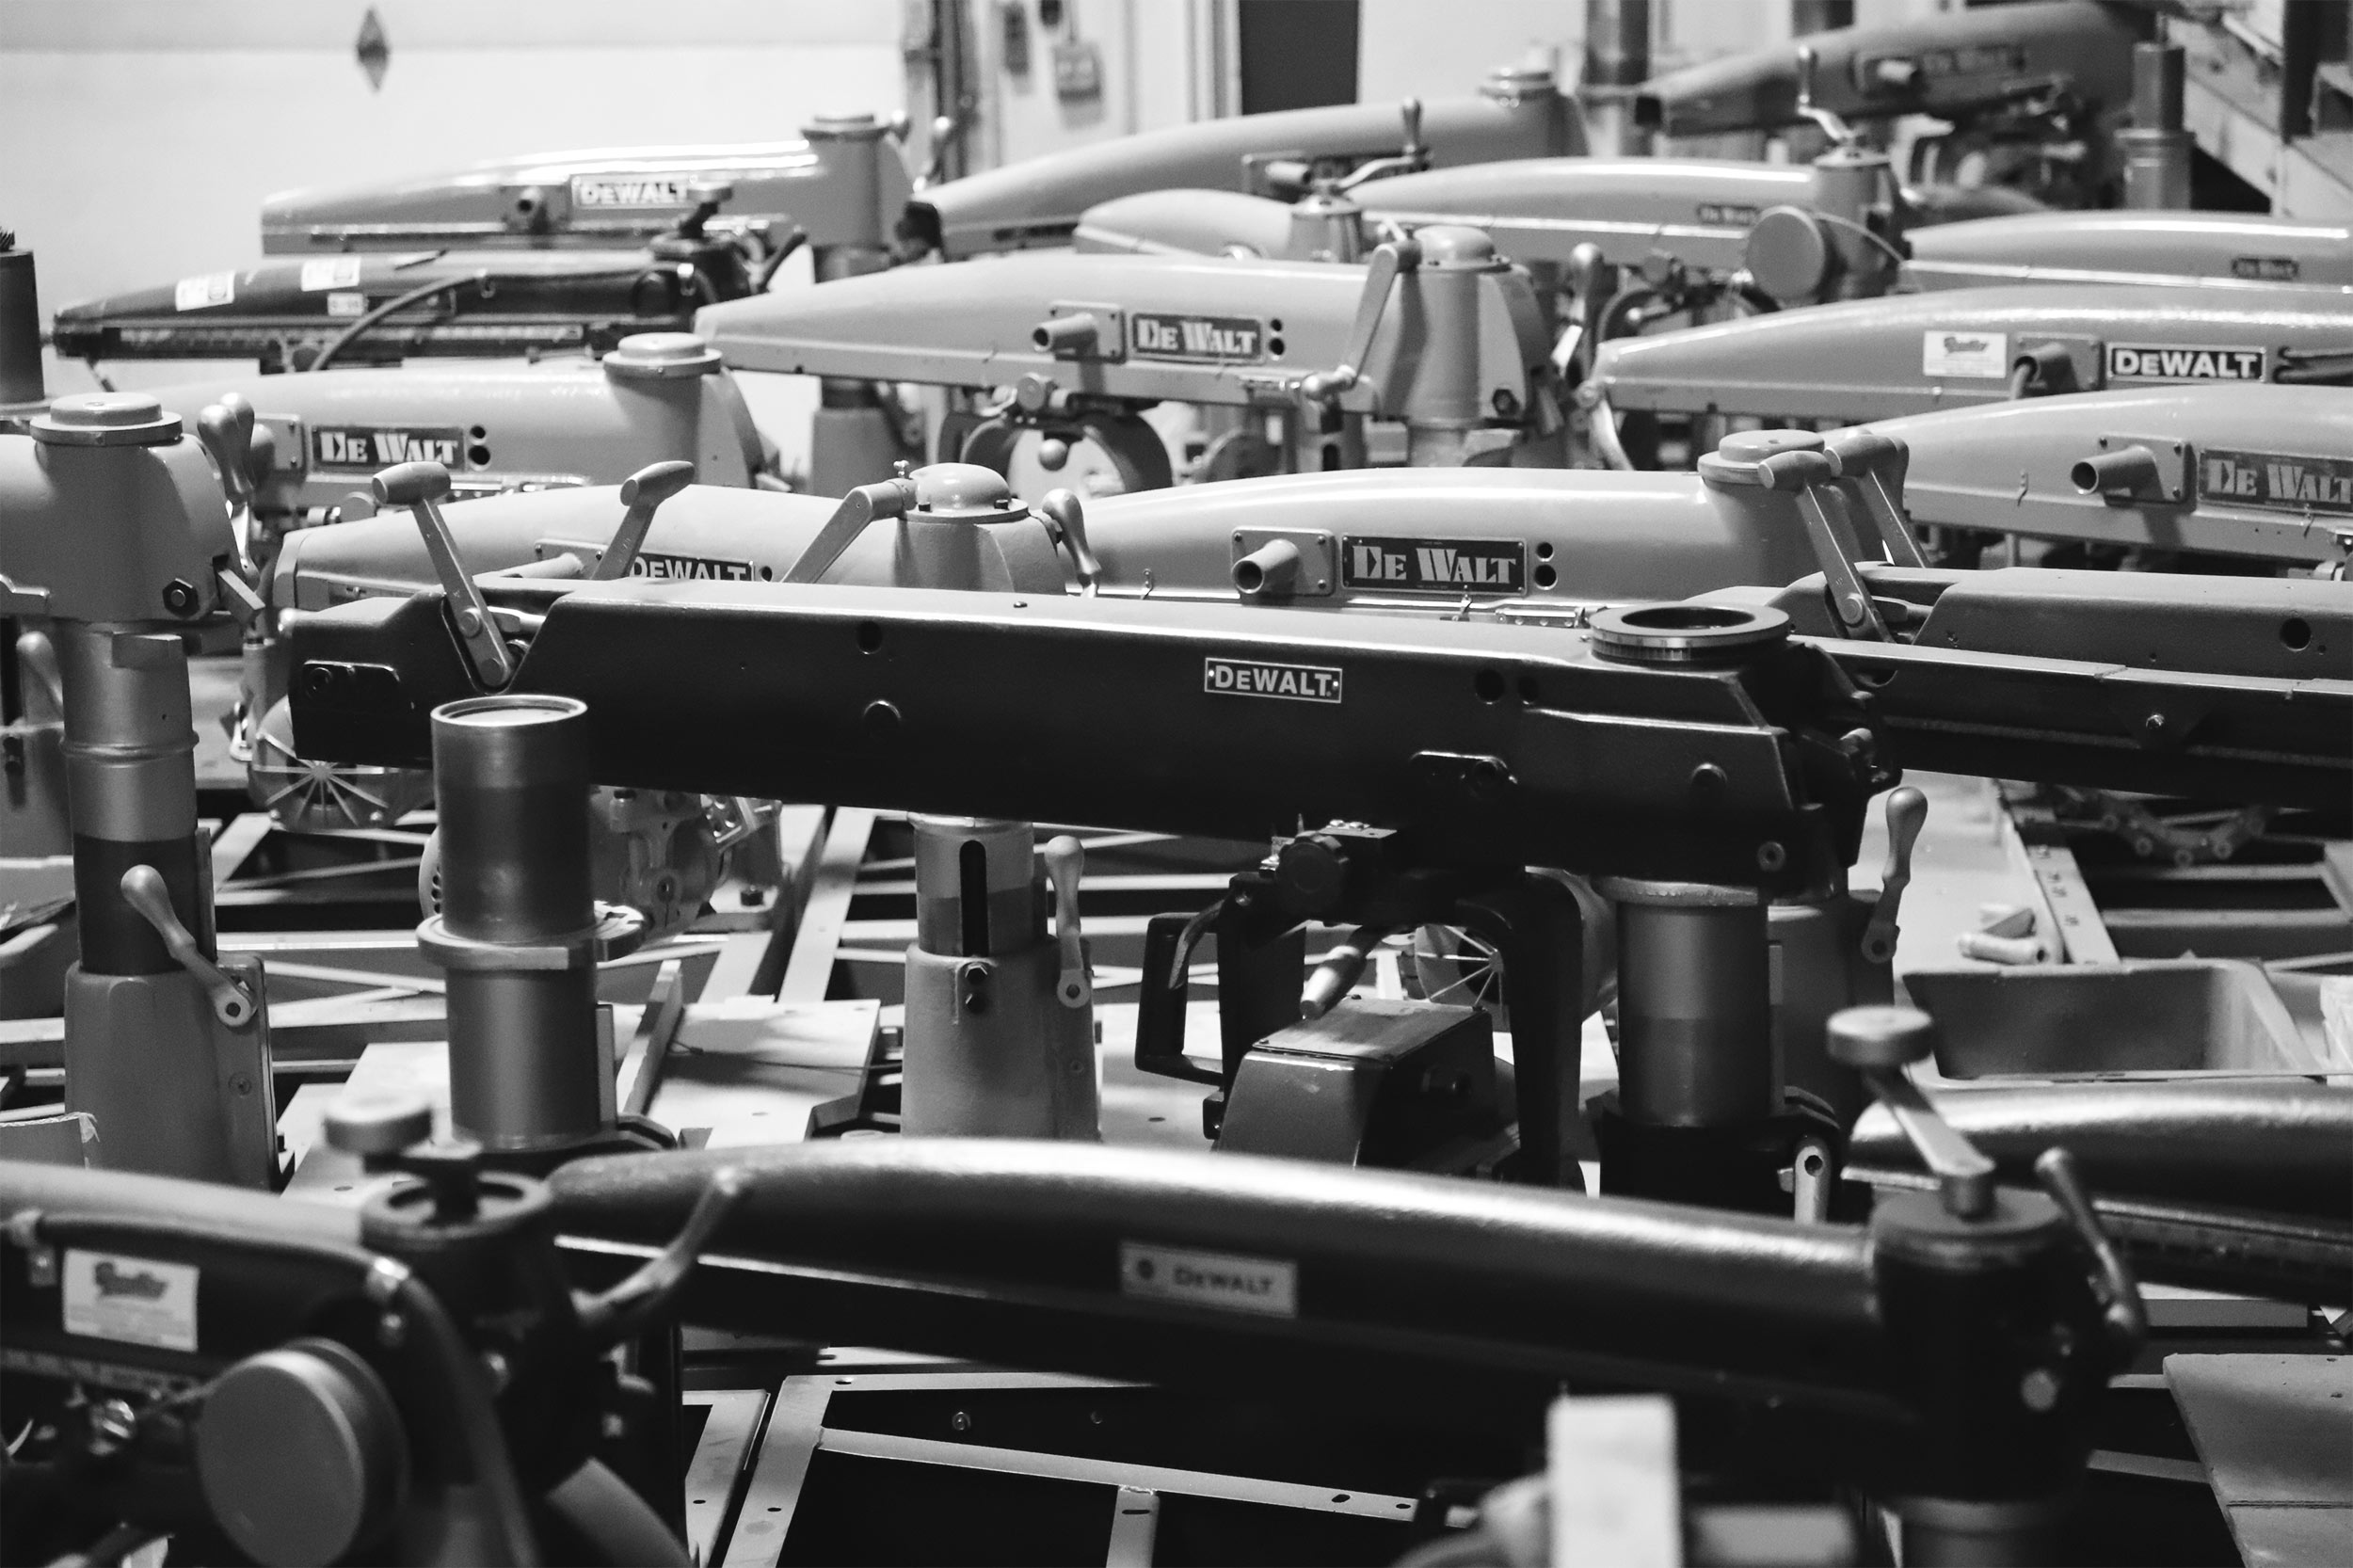 A bunch of Radial Arm Saws waiting for repair